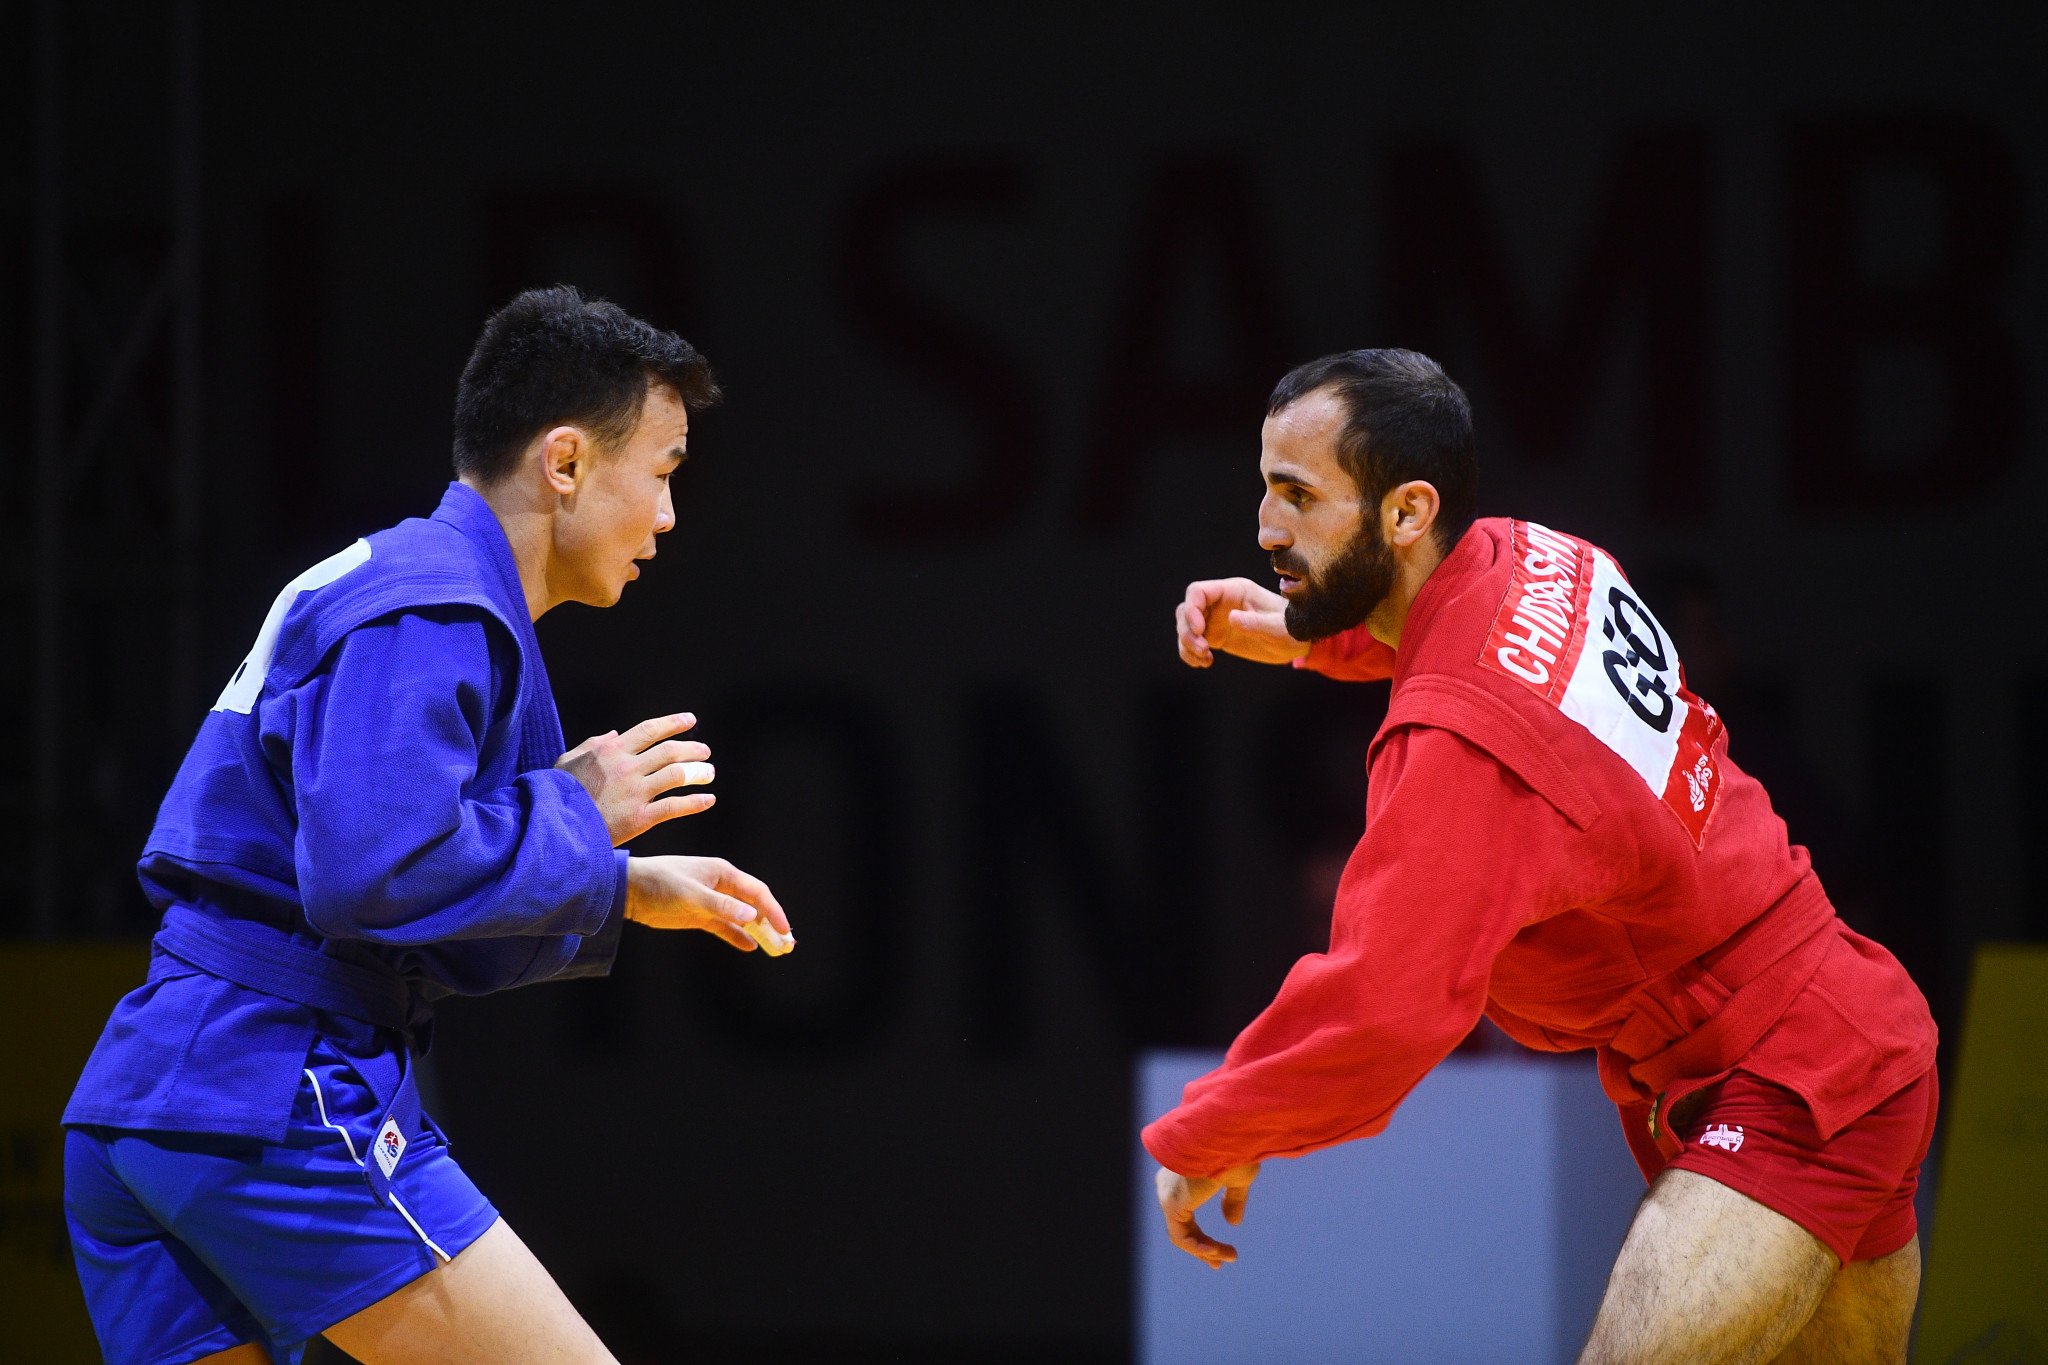 Vakhtangi Chidrashvili, in red, claimed Georgia's first gold of the Championships by defeating Sayan Khertek from Russia ©FIAS